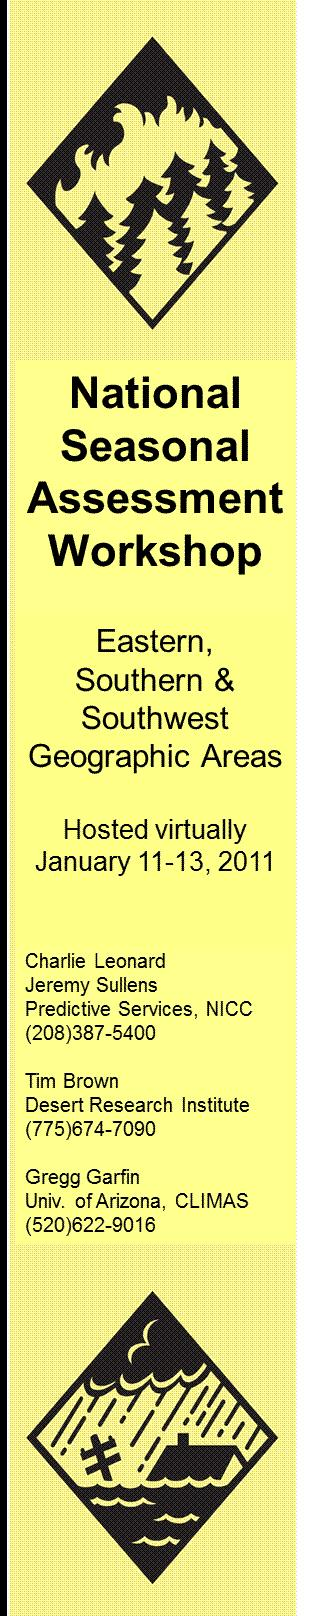 2011 National Seasonal Assessment Workshop for the Eastern, Southern, & Southwest Geographic Areas On January 11-13, 2011, wildland fire, weather, and climate met virtually for the ninth annual